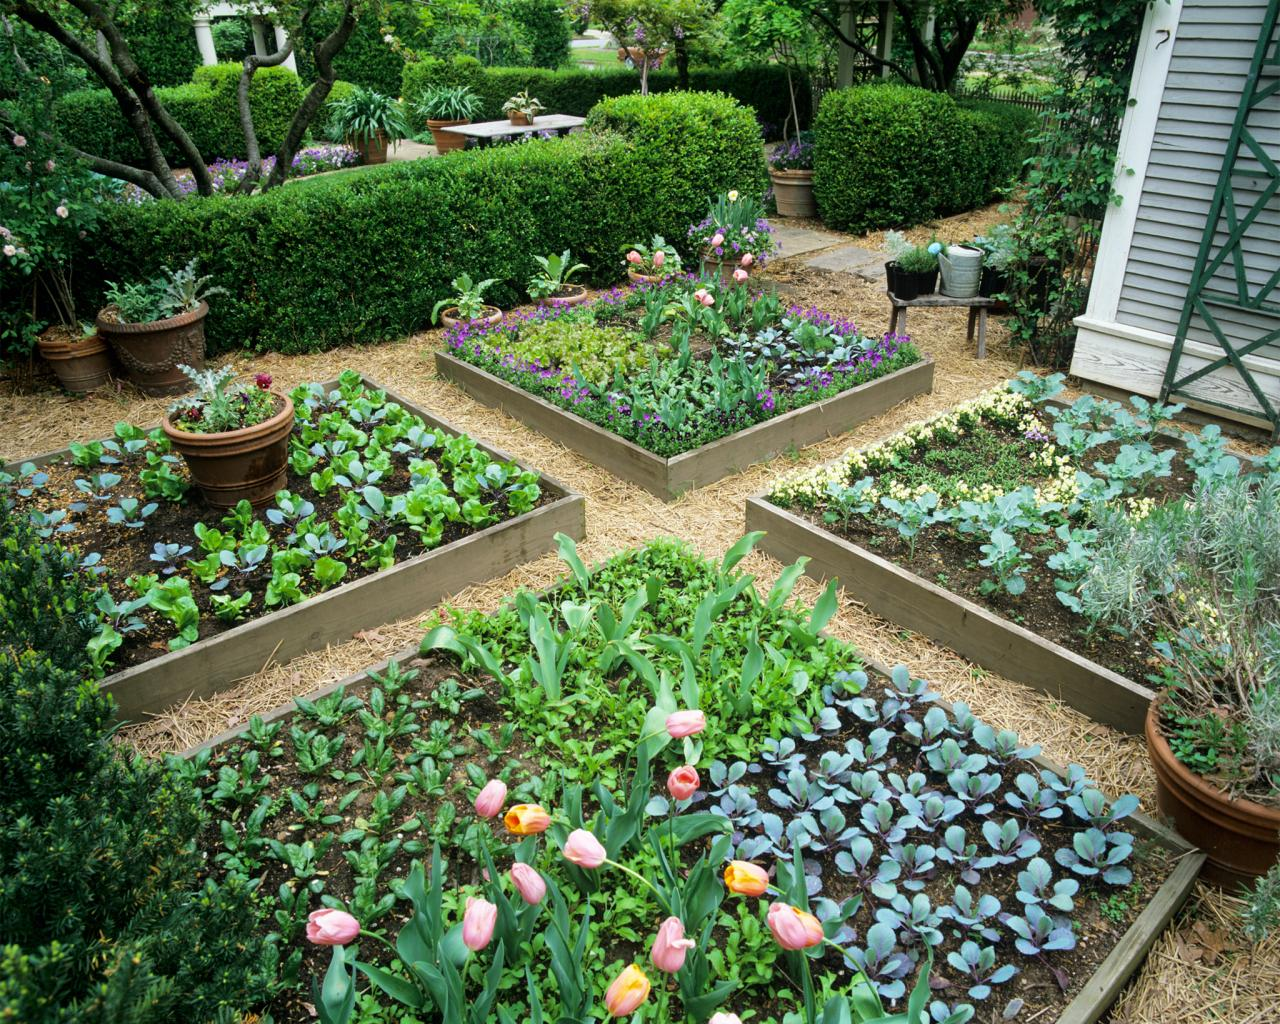 Raised Vegetable Garden Design related to outdoor spaces plants raised beds vegetables gardening Raised Bed Garden Design